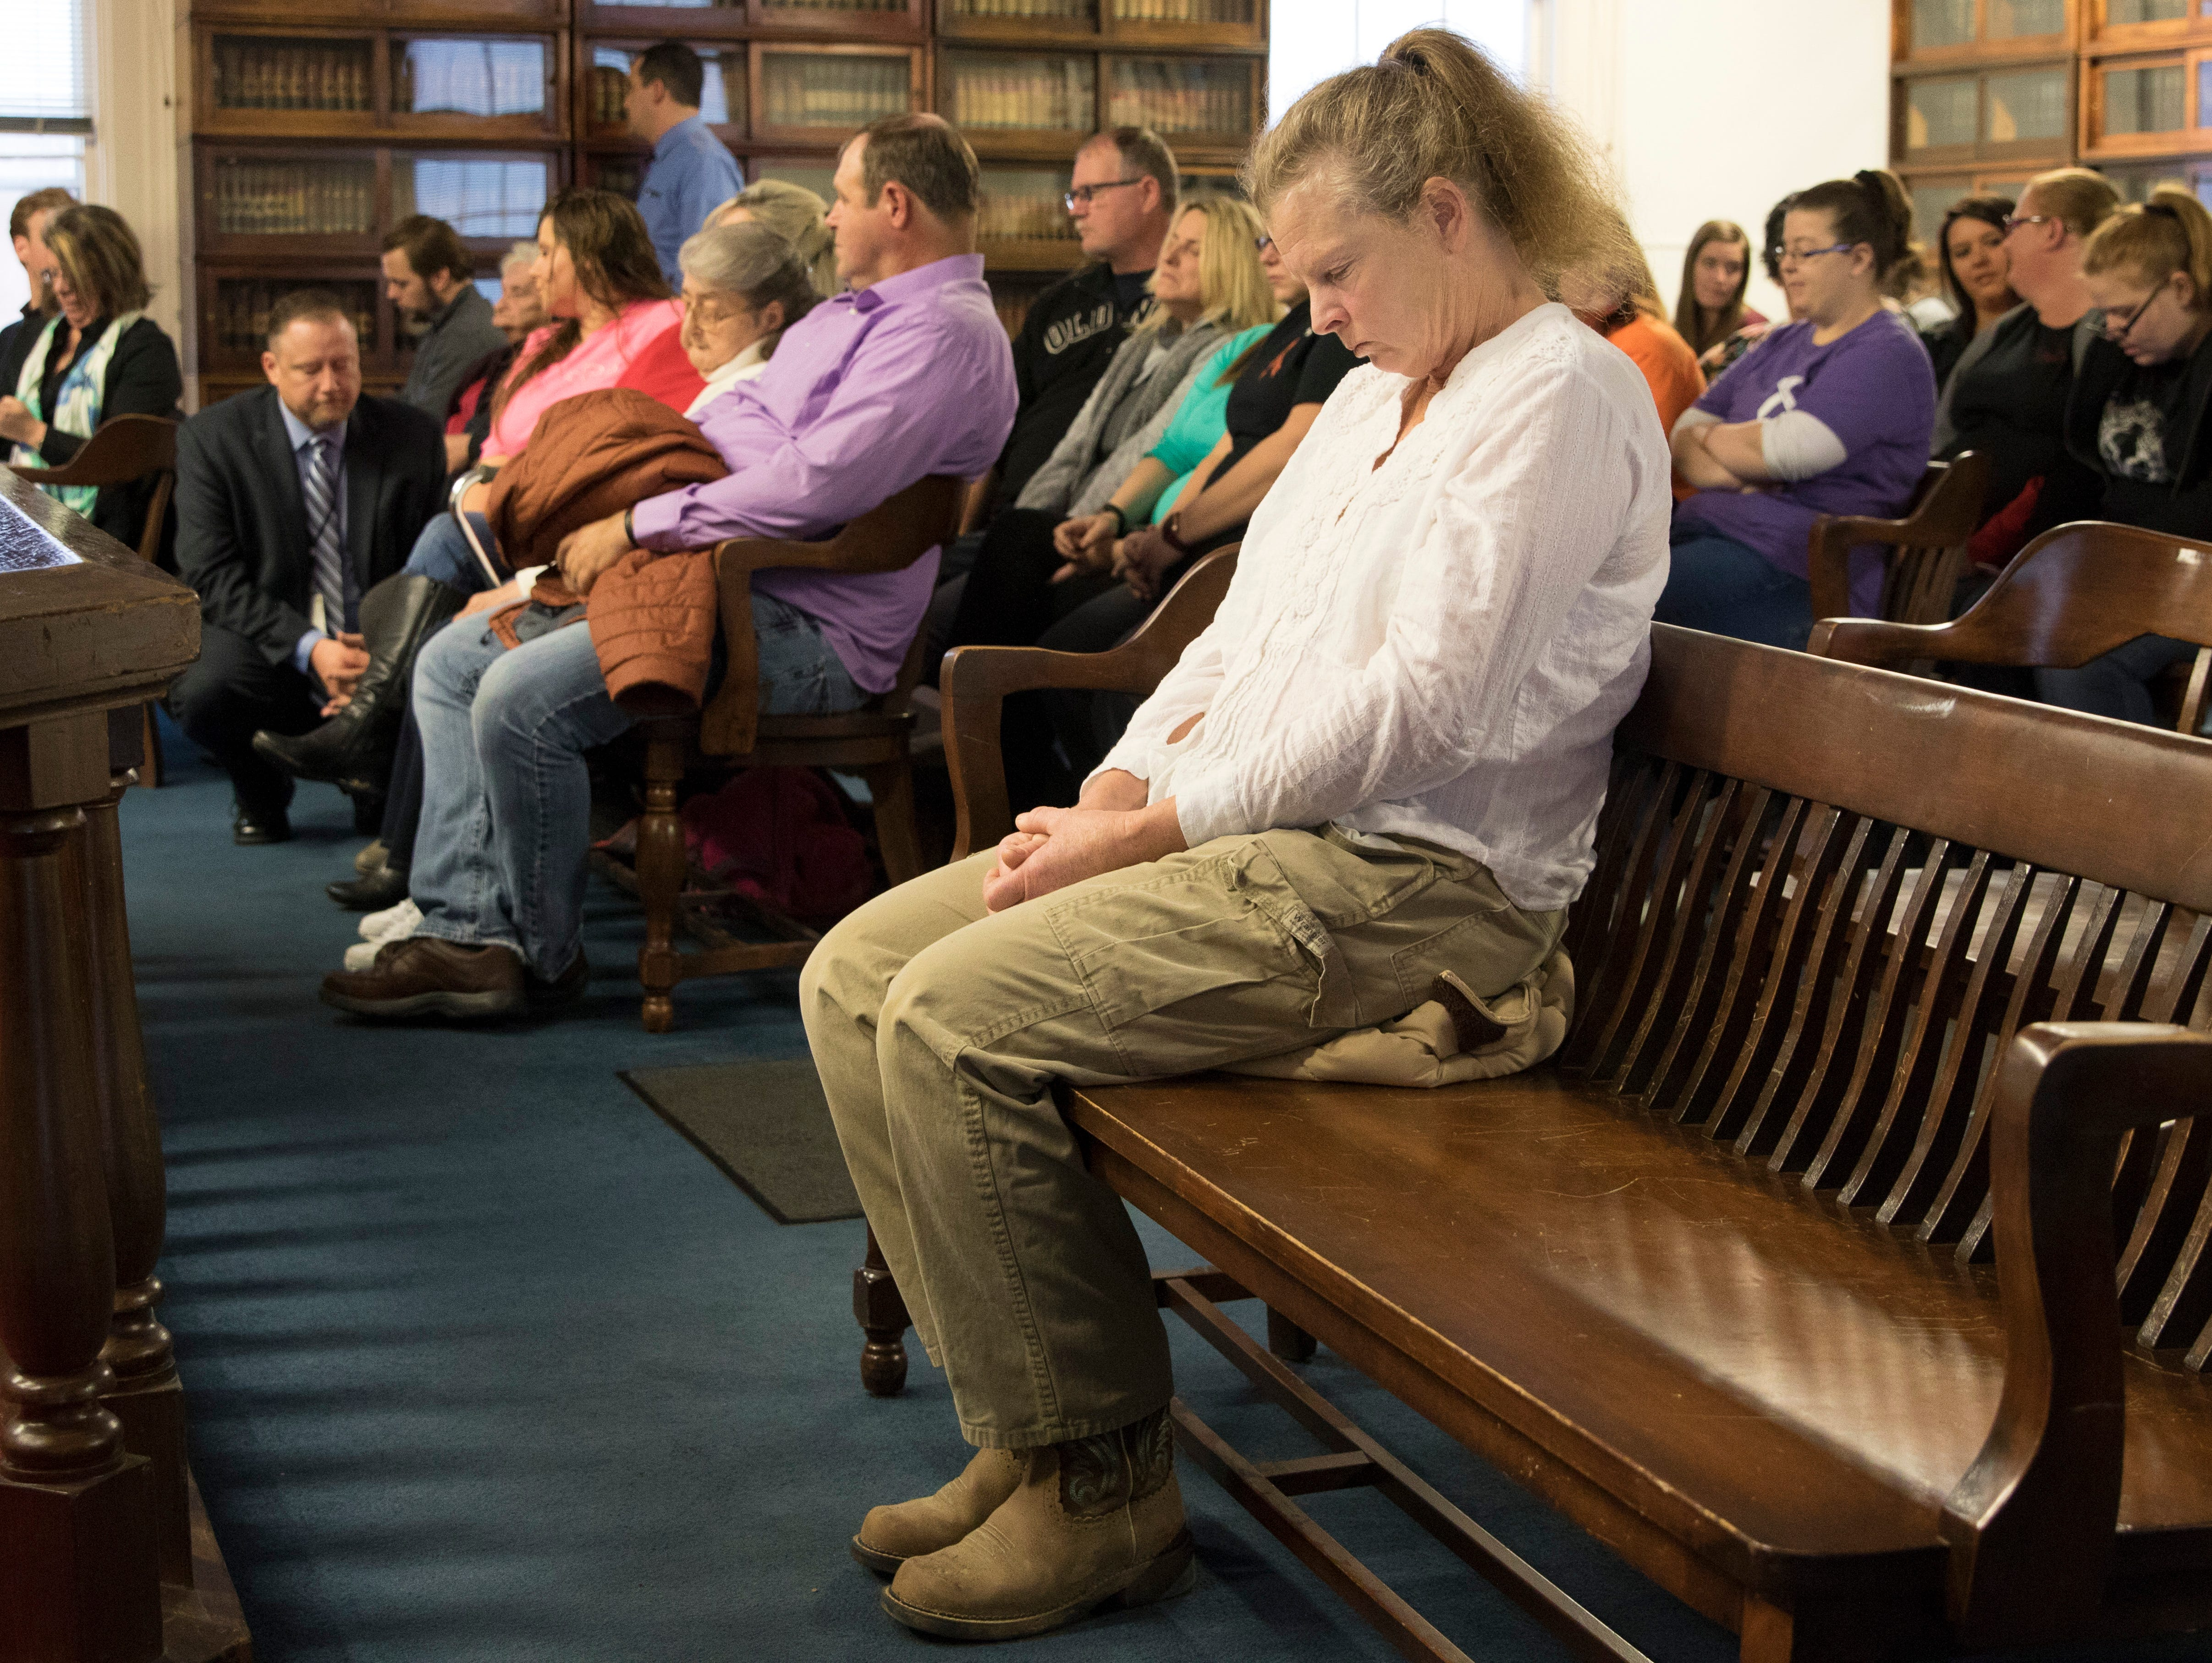 "A Wagner family member sits alone during Edward ""Jake"" Wagner's arraignment on Tuesday, November 27, 2018, in Waverly, Ohio. Jake Wagner is facing murder charges, along with his brother George Wagner IV and parents George ""Billy"" Wagner III and Angela Wagner, relating to the deaths of seven Rhoden family members and Hannah Gilley over a possible custody dispute.  Jake Wagner is the father of Hannah Rhoden's older daughter and possibly her youngest child. The eight homicides took place in April of 2016 at four different homes, all around the same time, and it would spawn the largest homicide investigation in Ohio history. If convicted, all are facing the death penalty."